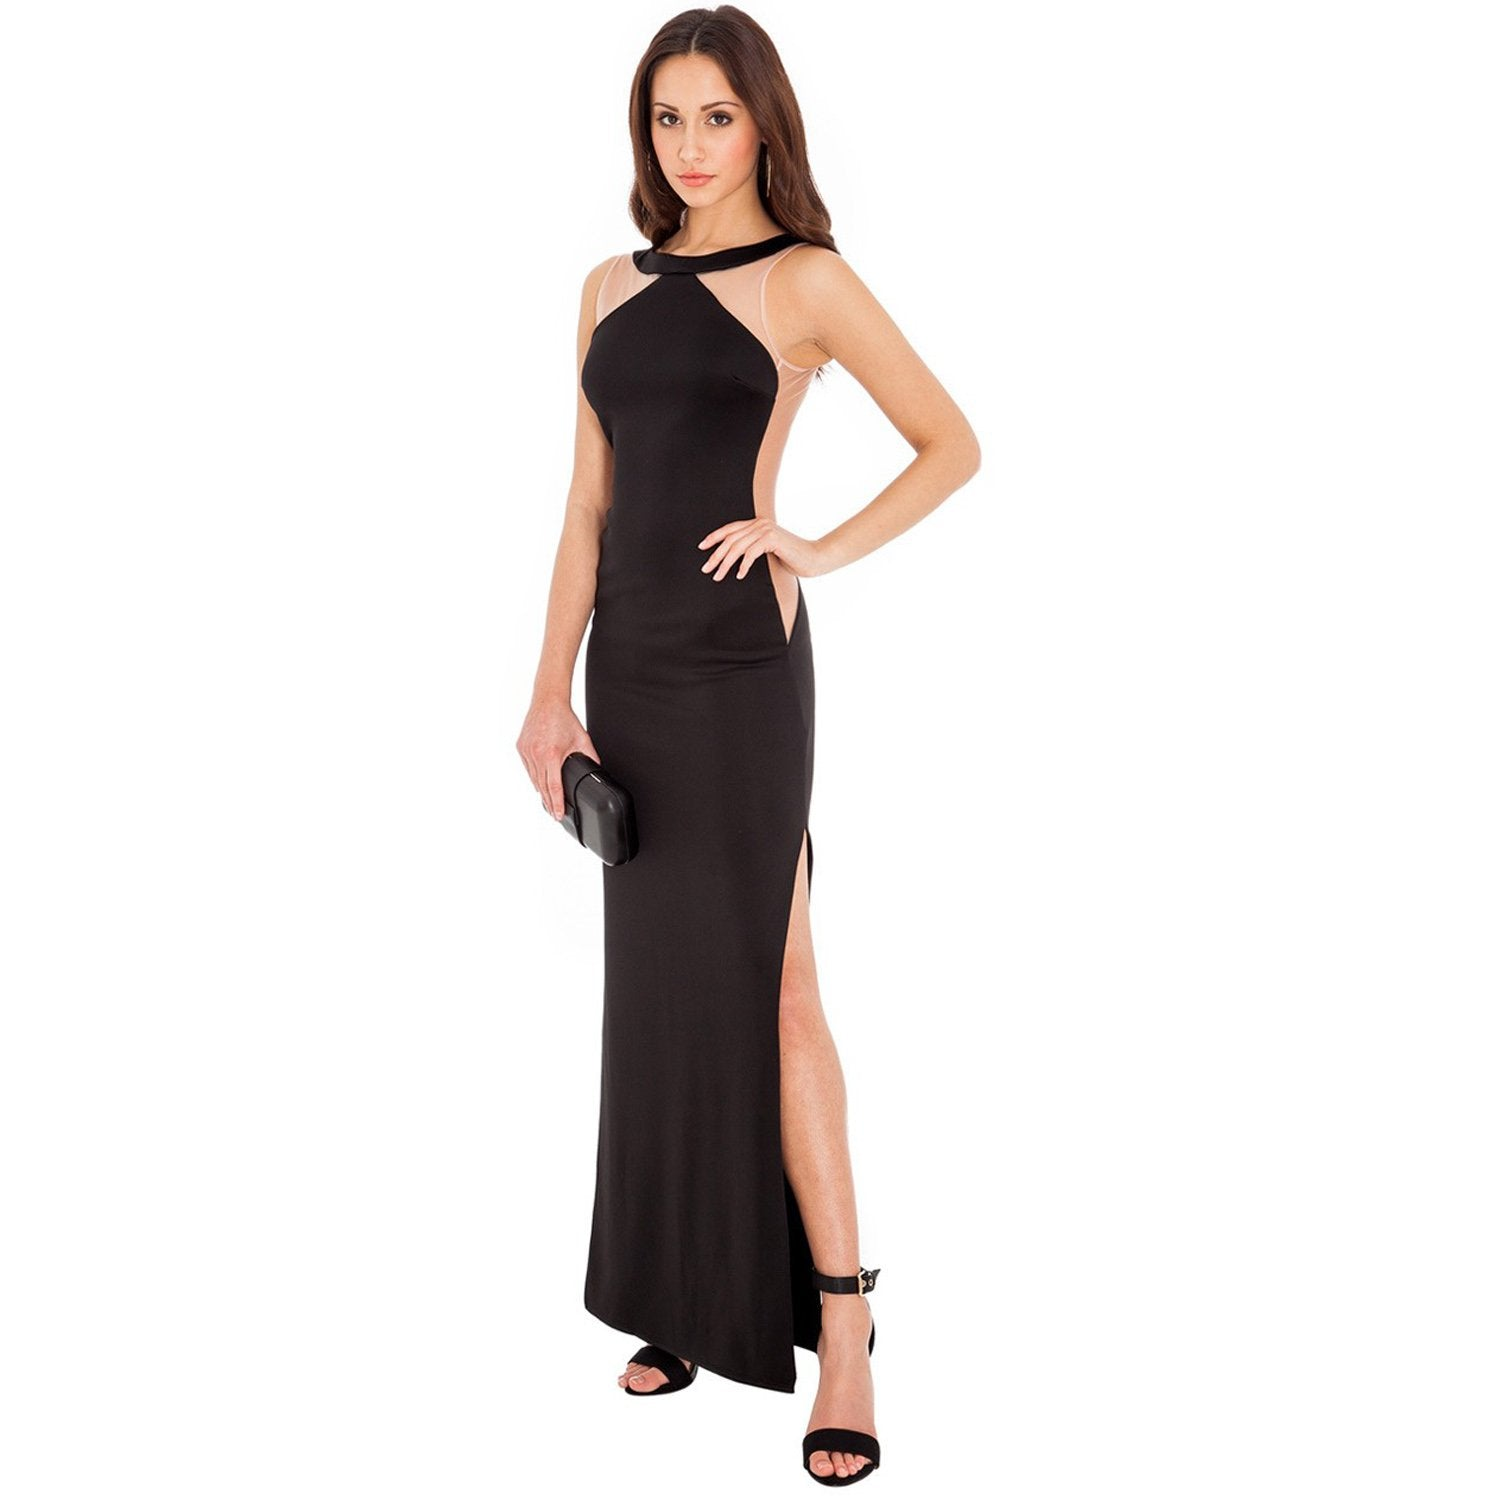 Jaune Dare Back Jennifer Lopez Gown